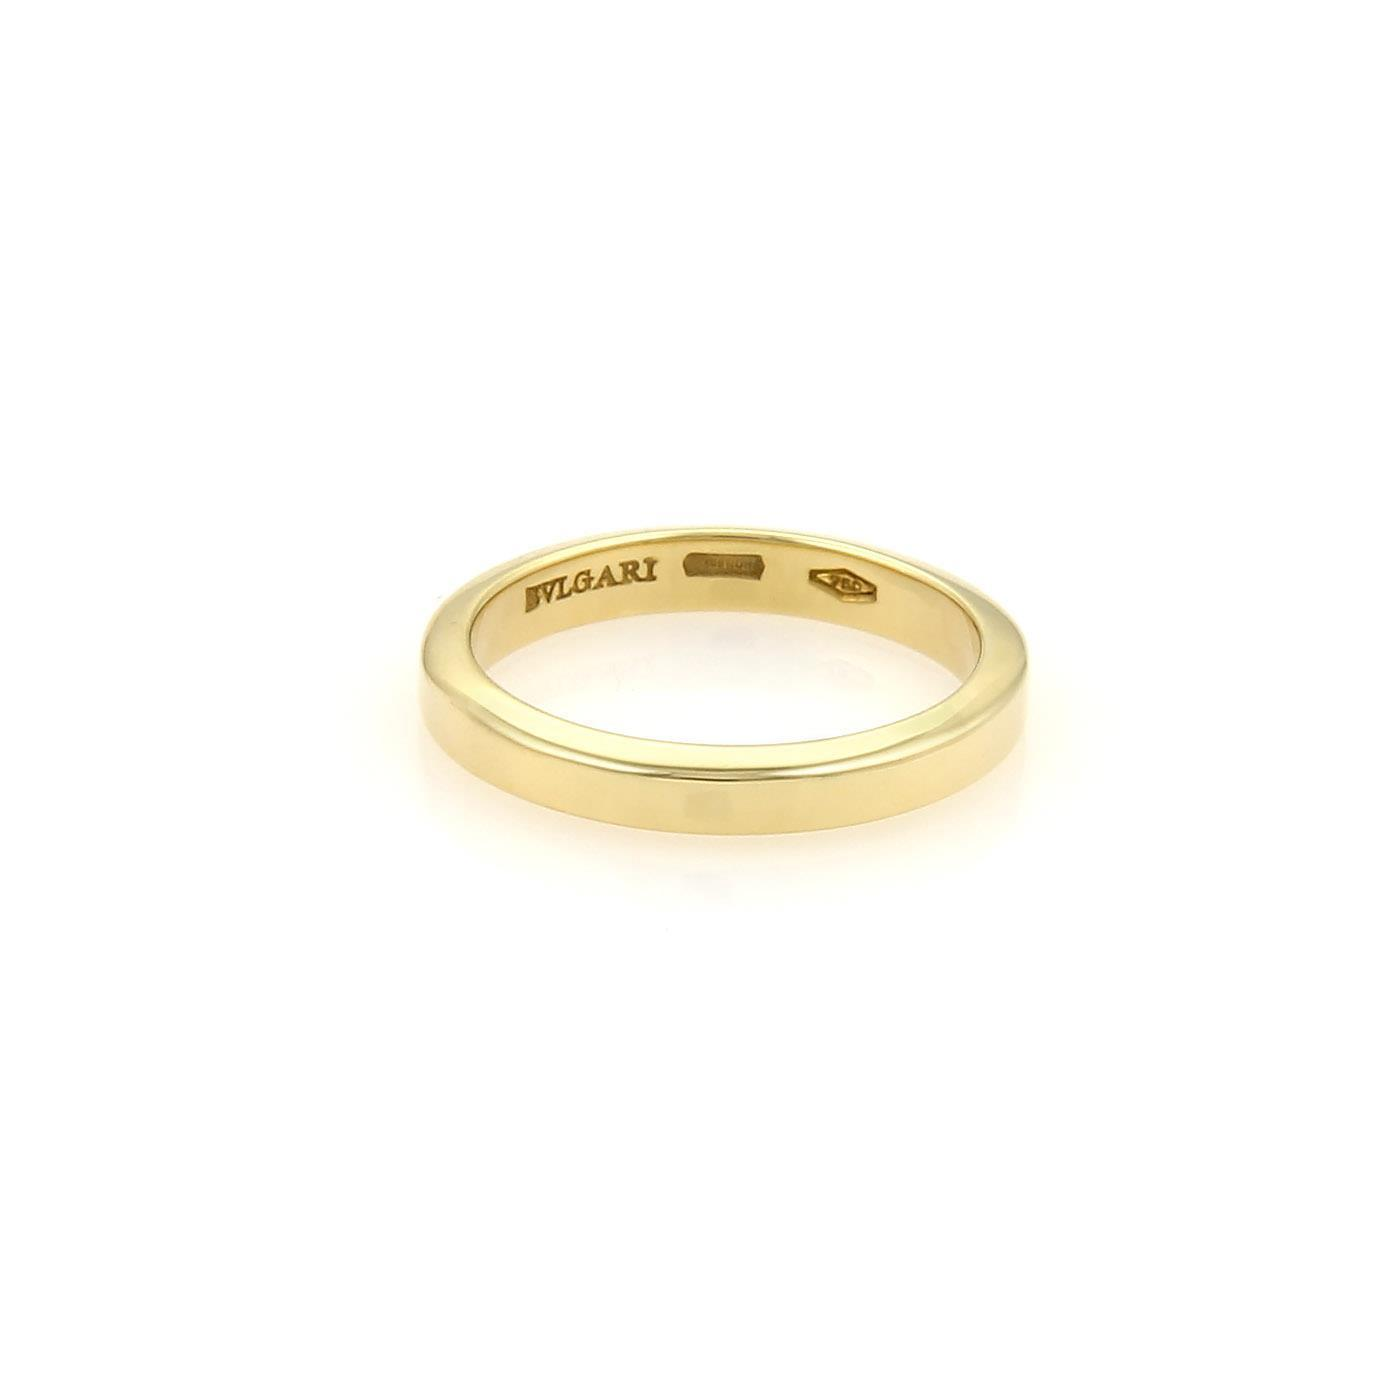 bvlgari bulgari 18k yellow gold flat 3mm plain wedding band ring size 575